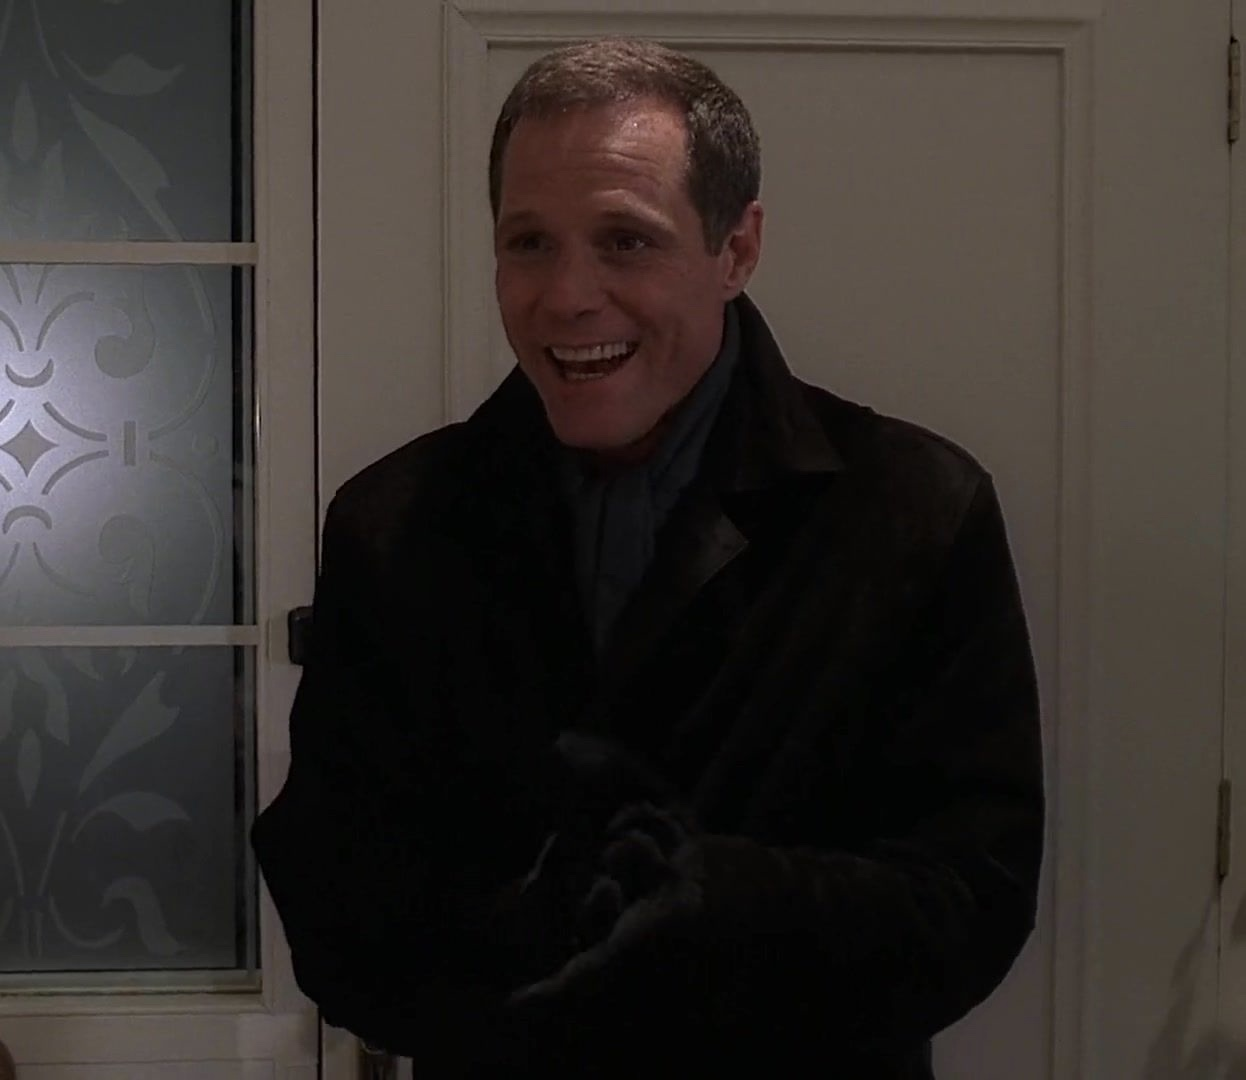 Peter McCallister/Home Alone 4